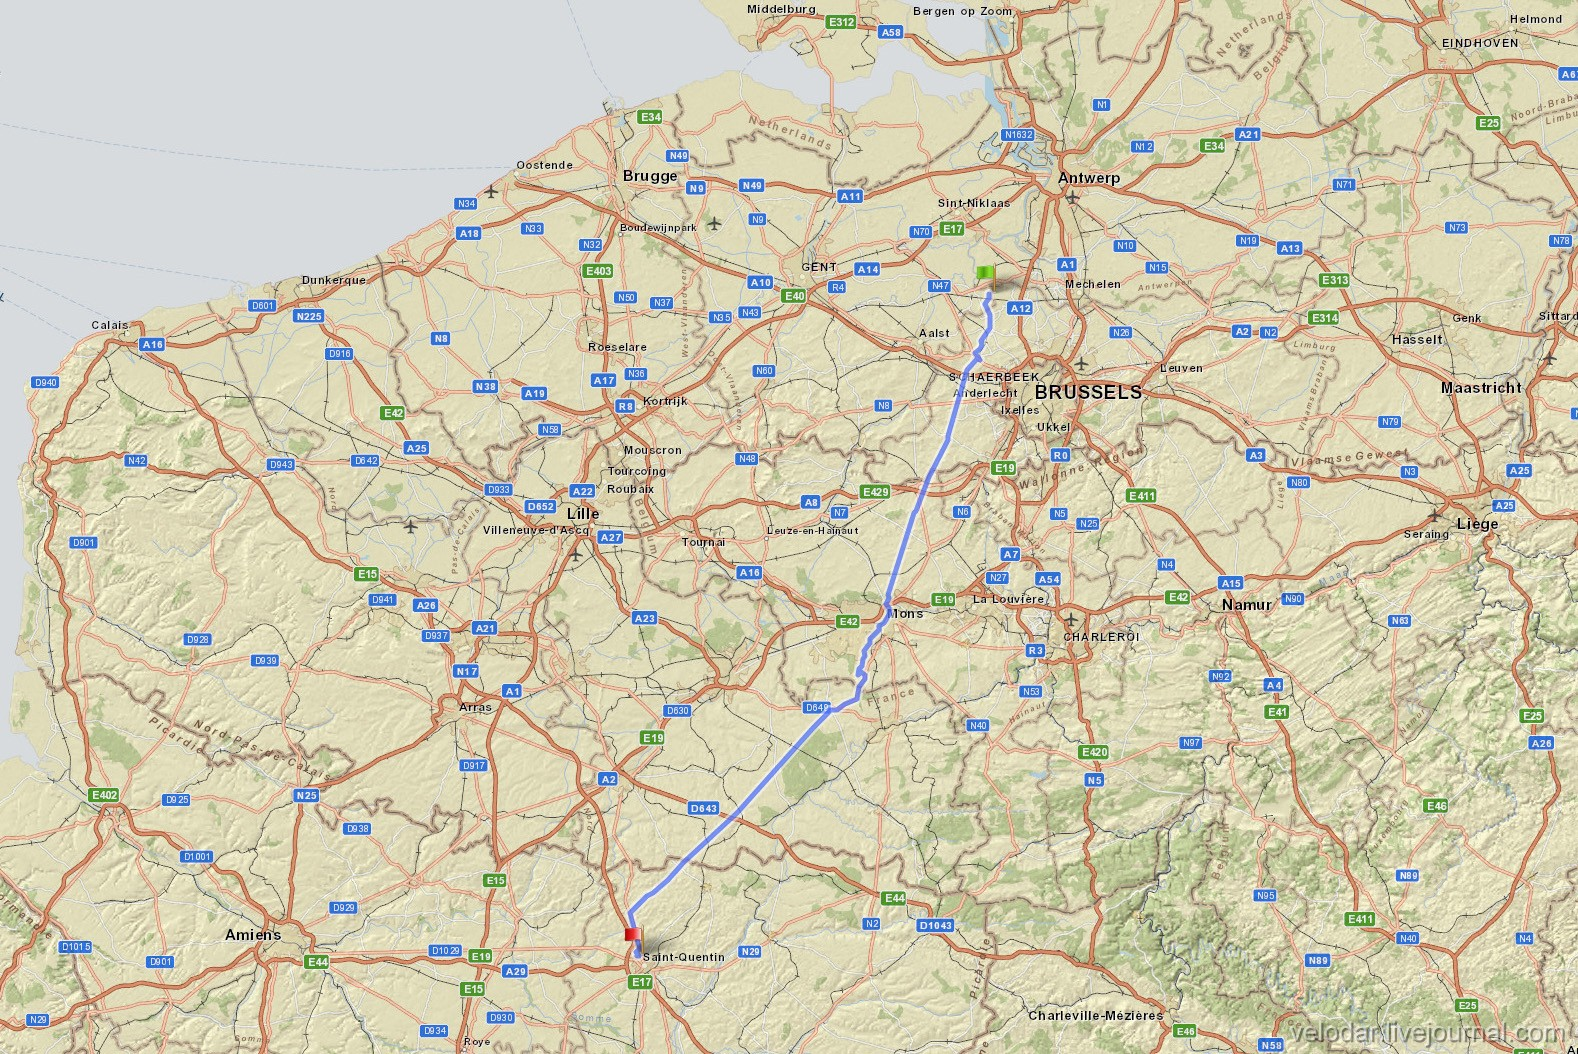 Day 30 Buggenhout - Saint-Quentin_small.jpg